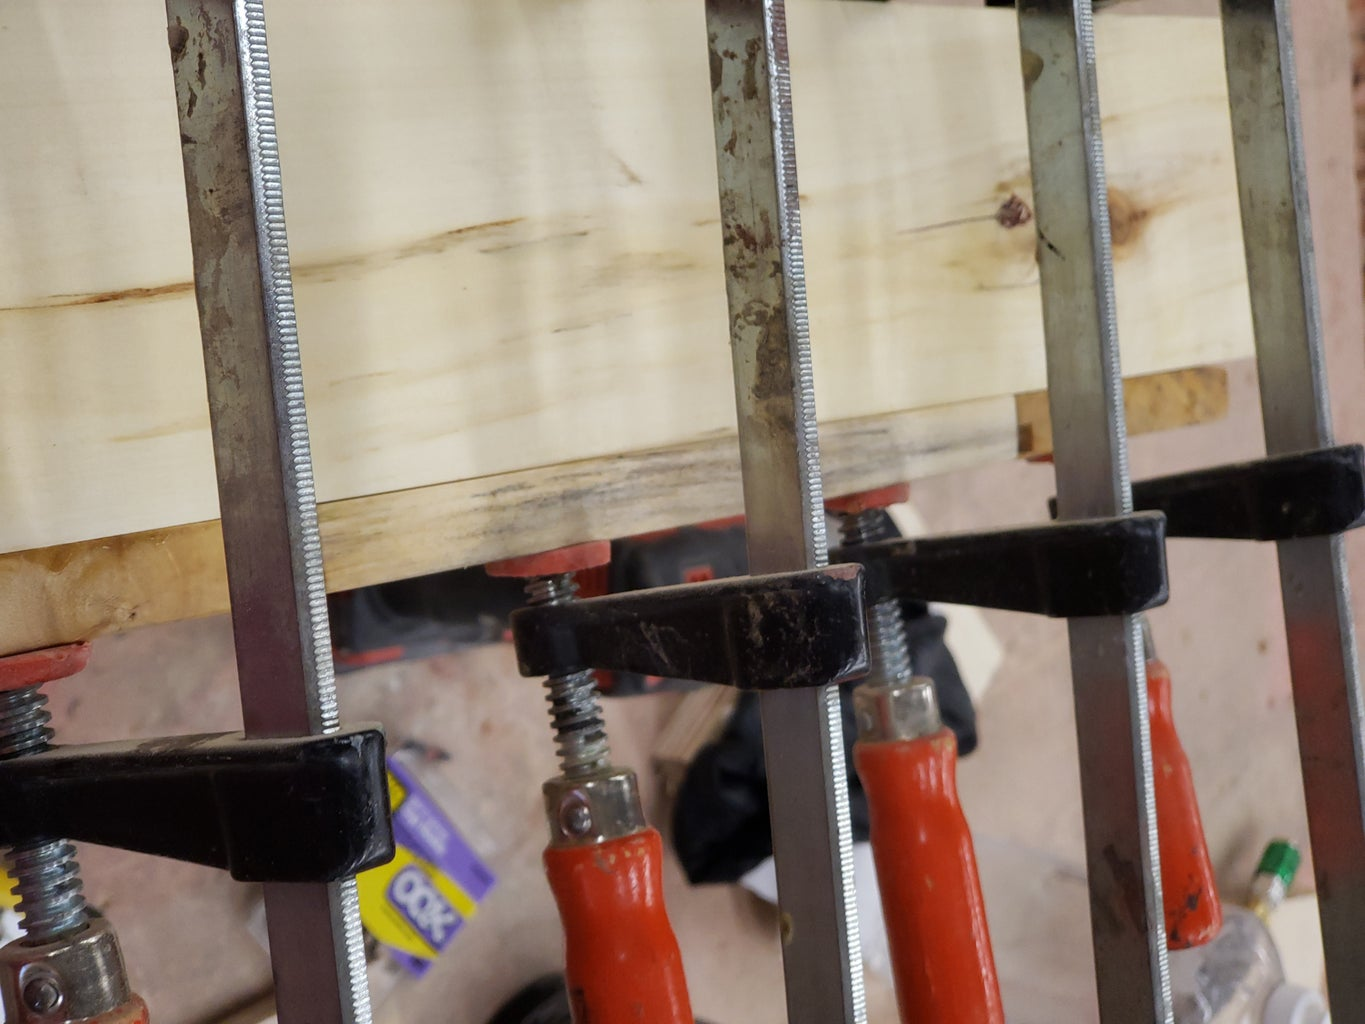 Attaching the Base and Hooks